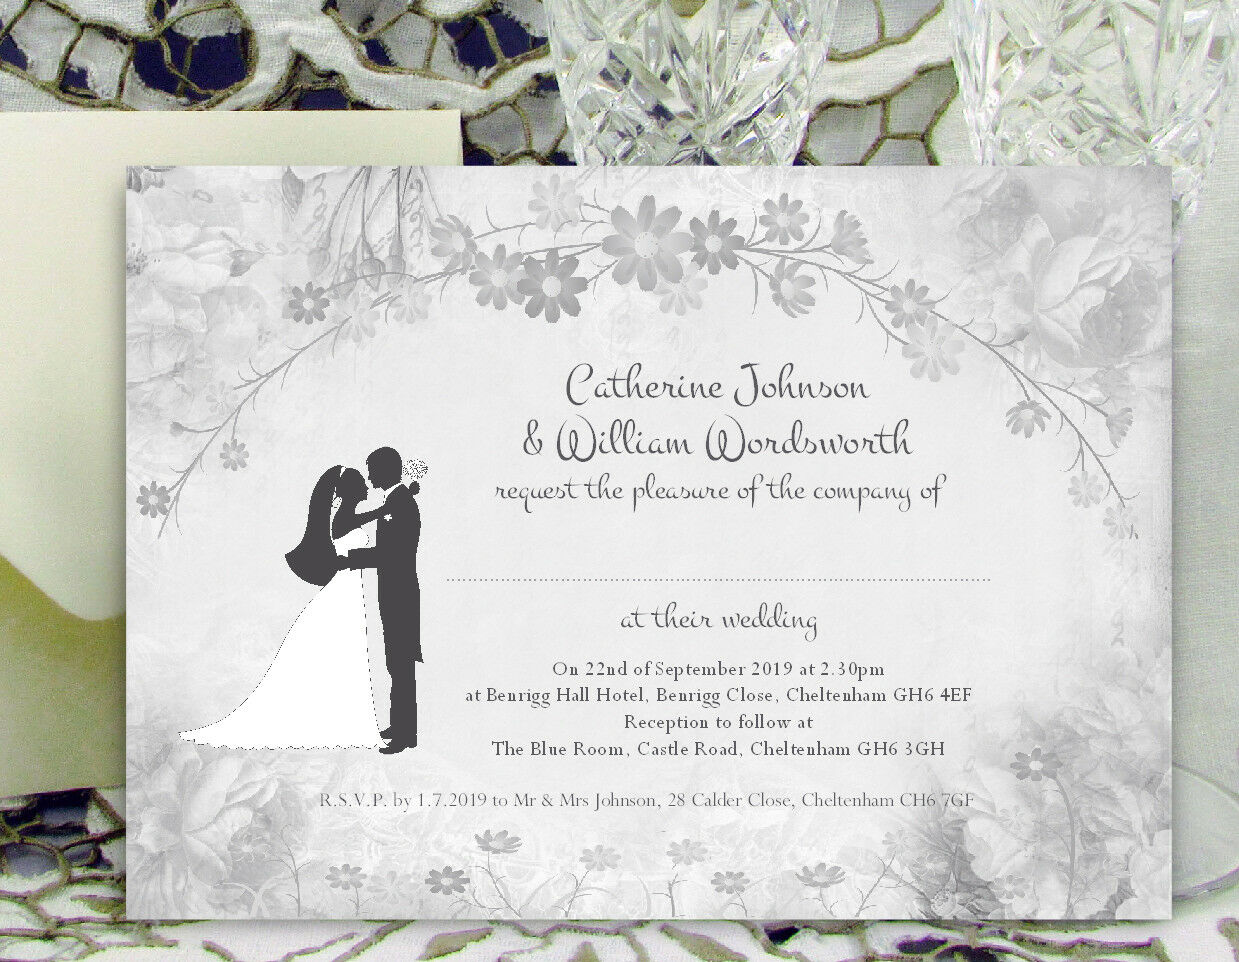 LARGE PERSONALISED WEDDING INVITATIONS Silhouette Flower Design with Envelopes